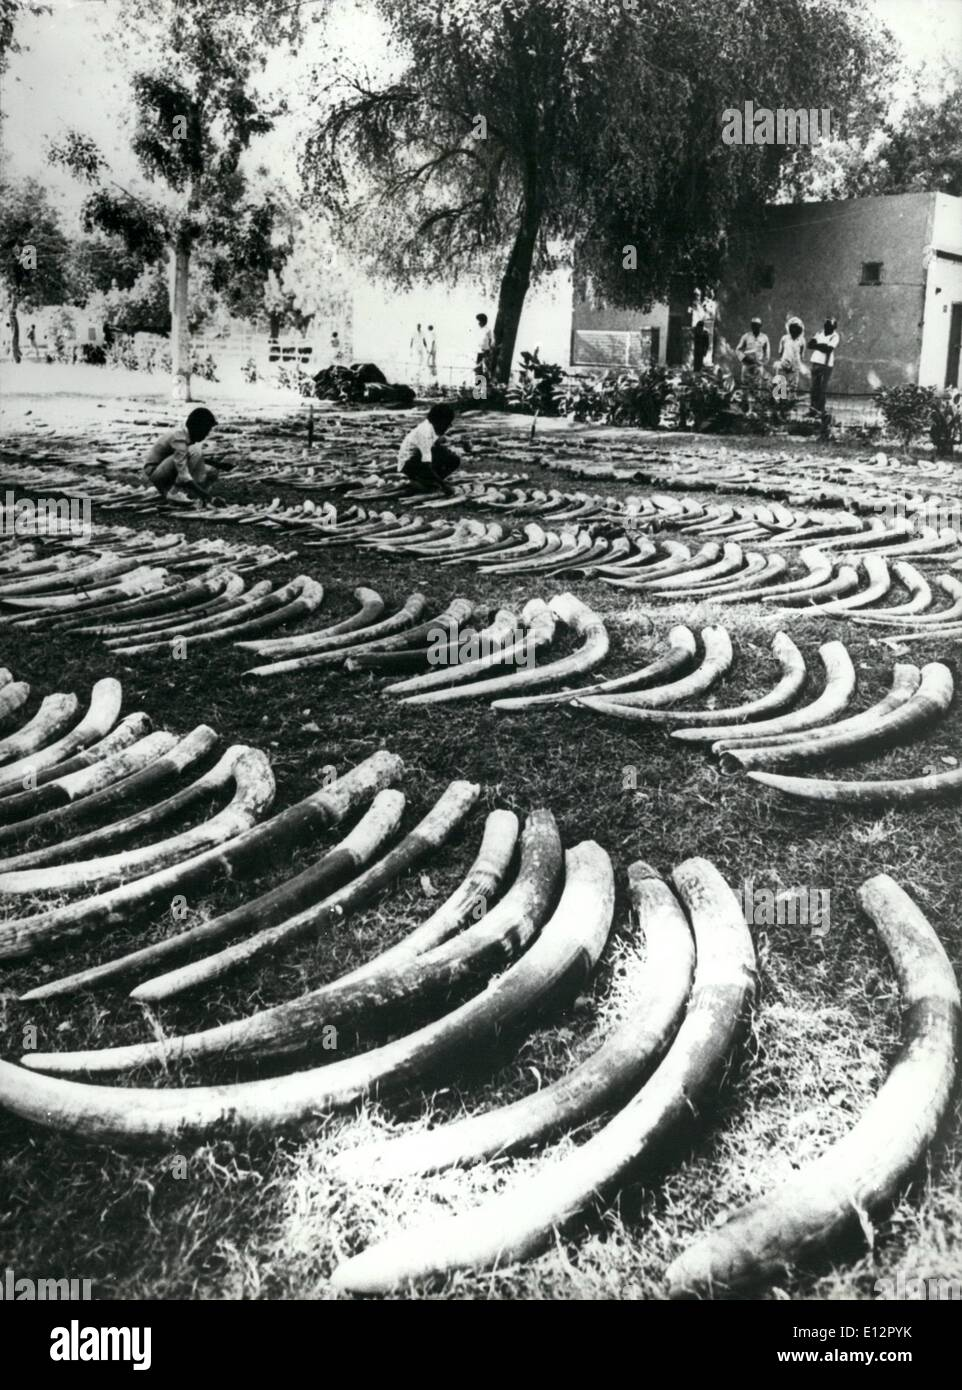 Feb. 25, 2012 - Ivory Fortune Found at Port Sudan: at the Sudanese Port Sudan, the police found 11.9 tone of Ivory,which is valued at around one million dollars. They were already crated up for shipment abroad, but this time the amugglars lost out.For those 2362 elephant tuaka layed out on a lawn 1,181 elephants had to die. Later the ivory will be sold at the Sudan capital of Khartum. - Stock Image